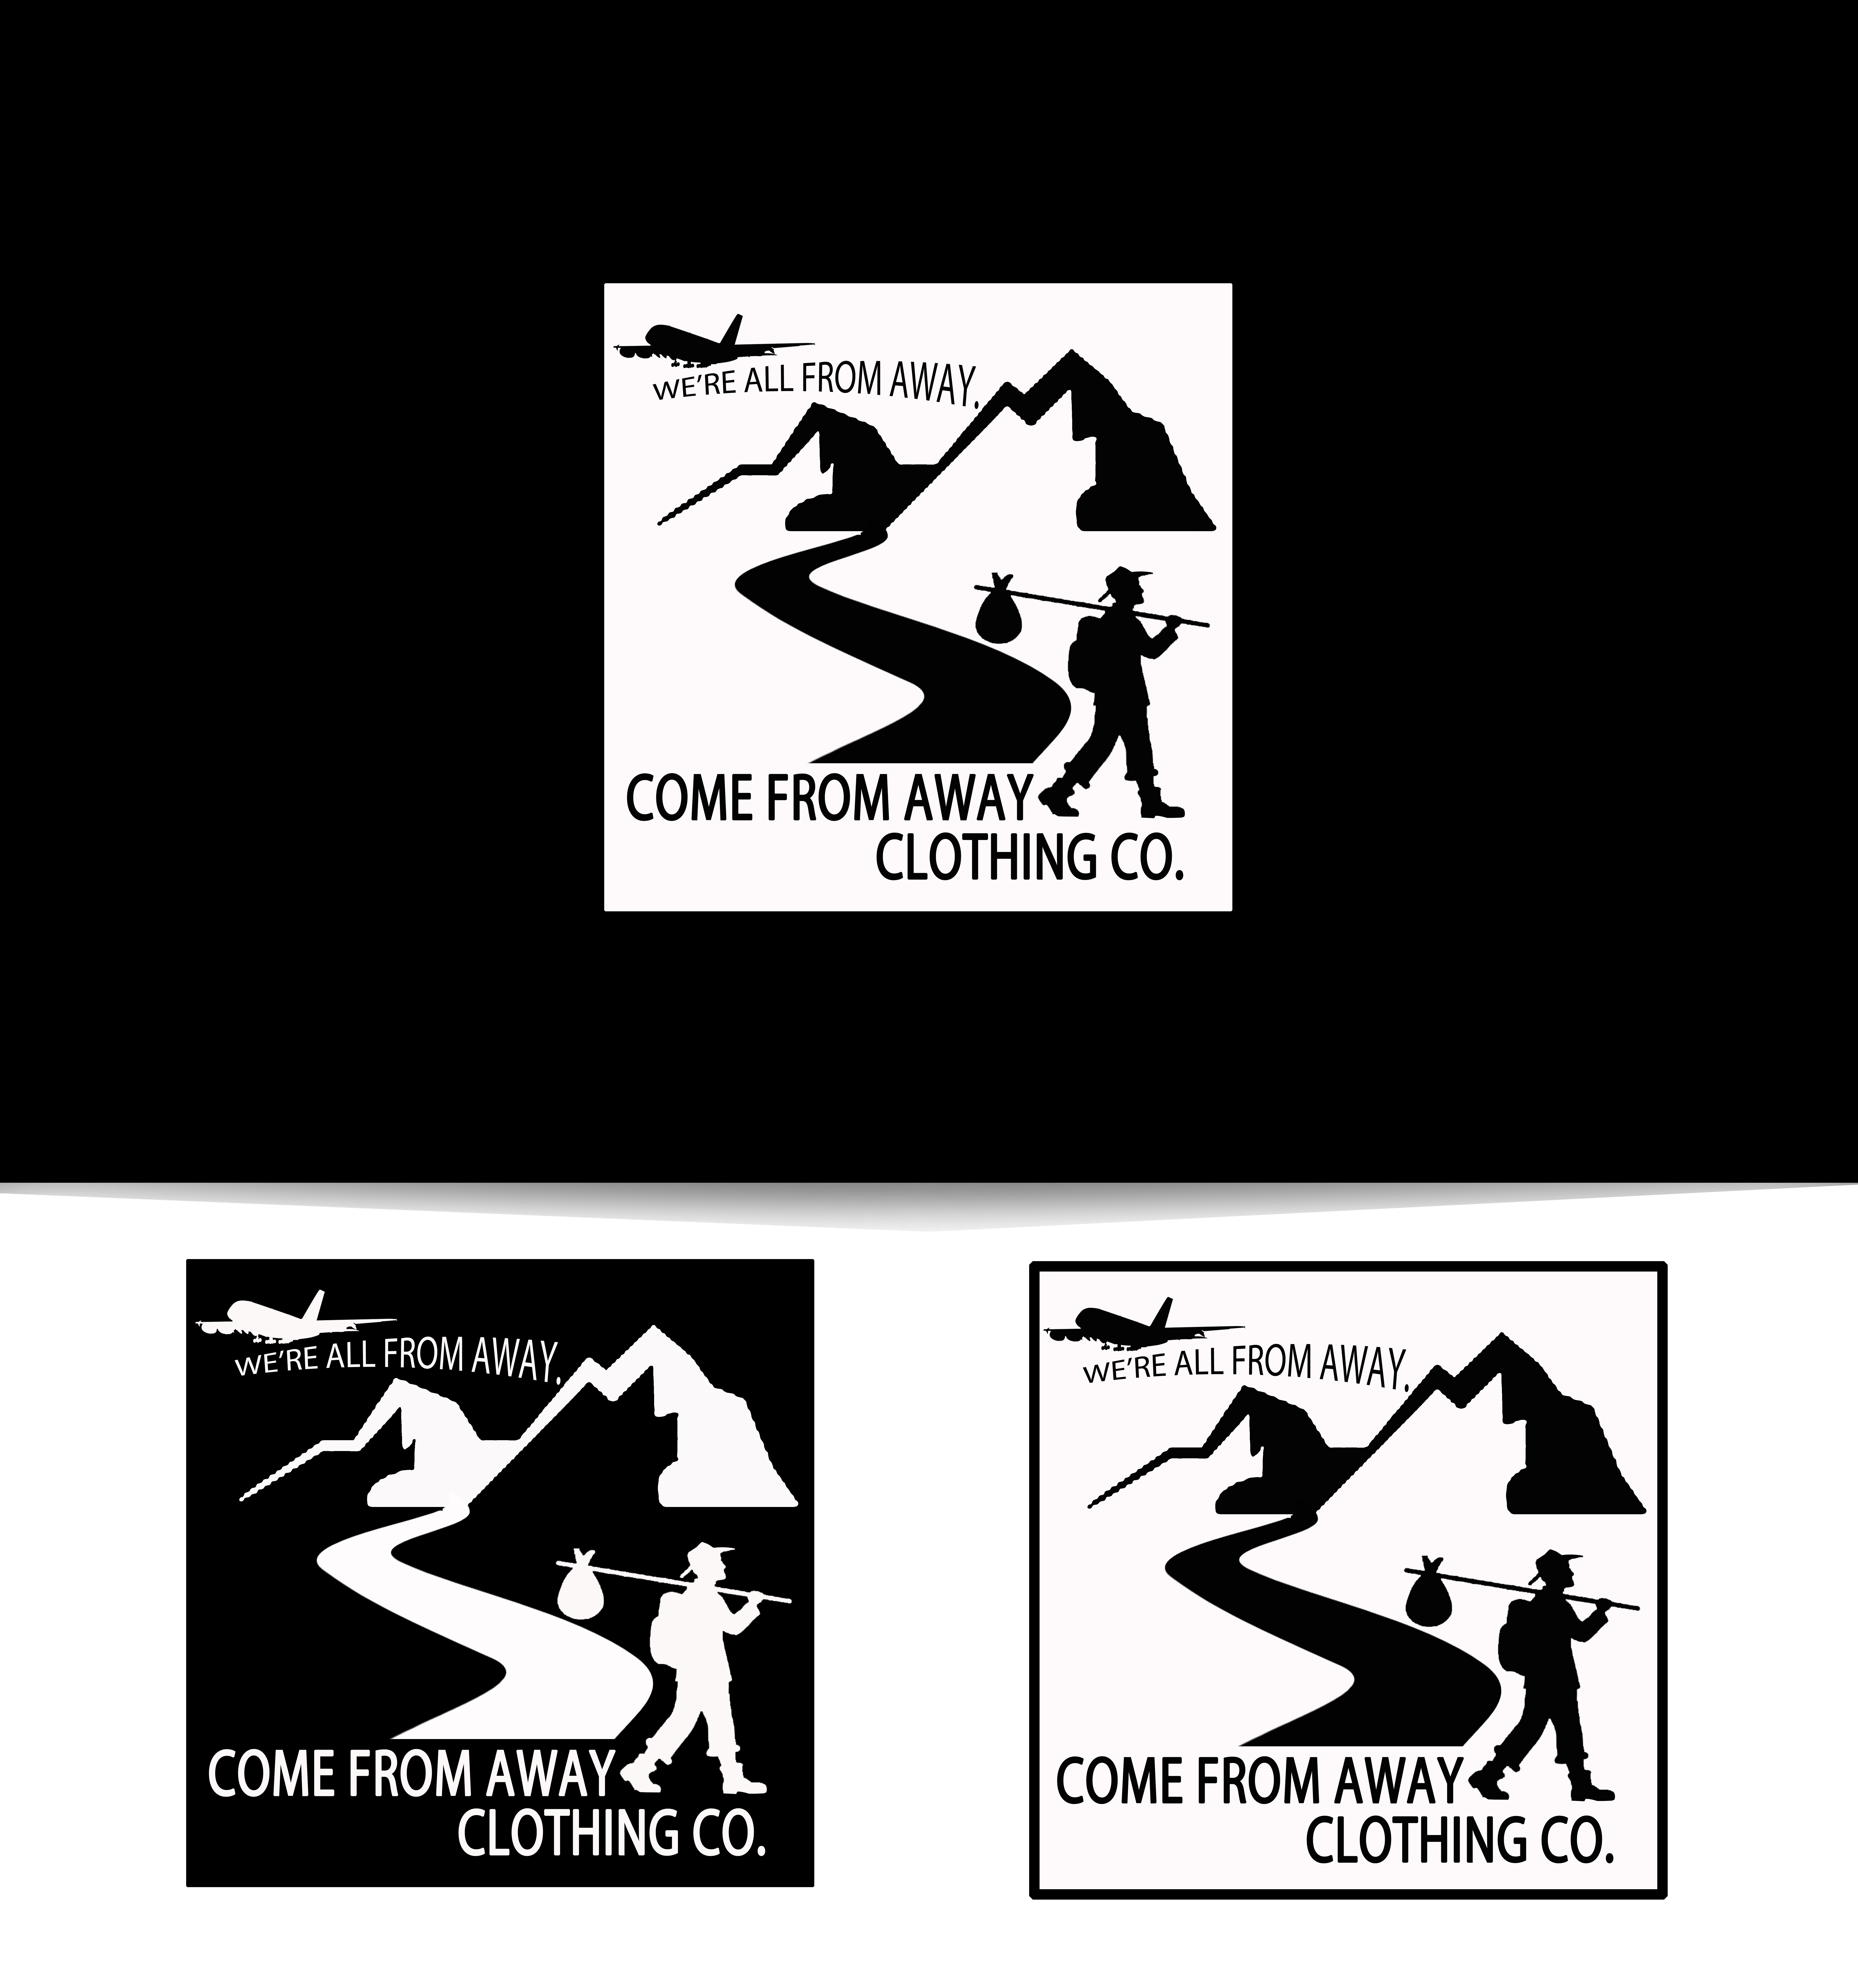 Logo Design by JSDESIGNGROUP - Entry No. 138 in the Logo Design Contest Artistic Logo Design for Come From Away Clothing Company.